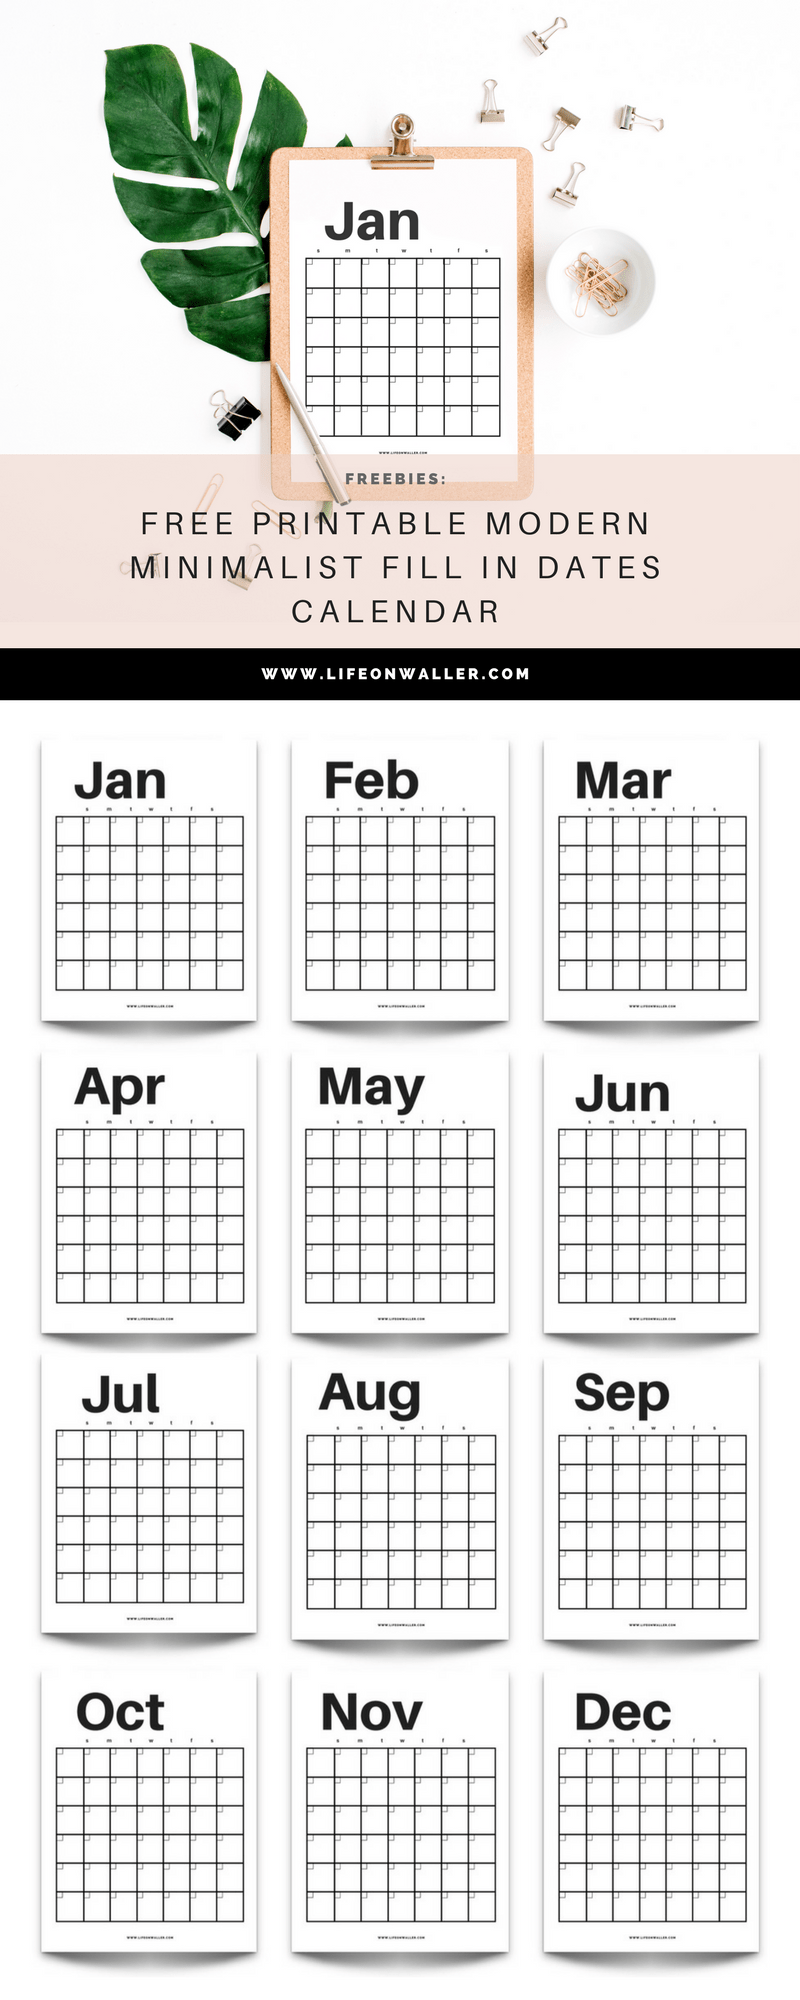 Free Printable Modern Minimalist Fill In Calendar Use For Any Year